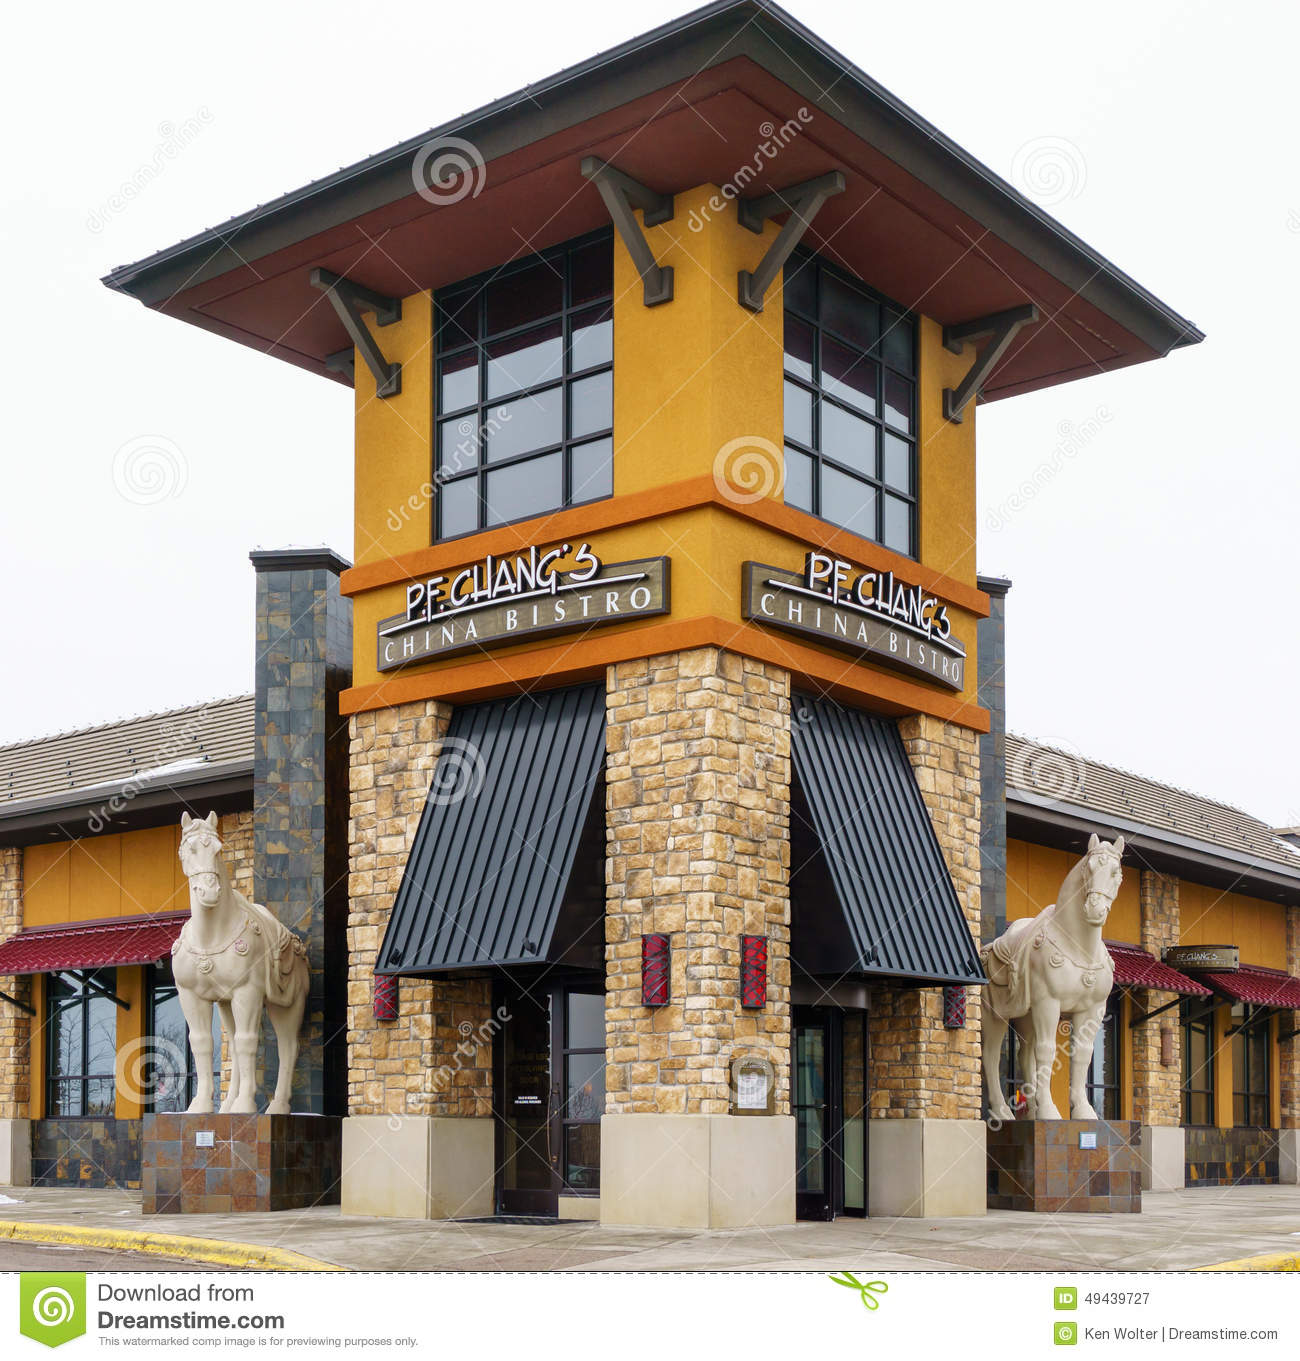 P f chang restaurant exterior editorial photography for Restaurant exterior design photos